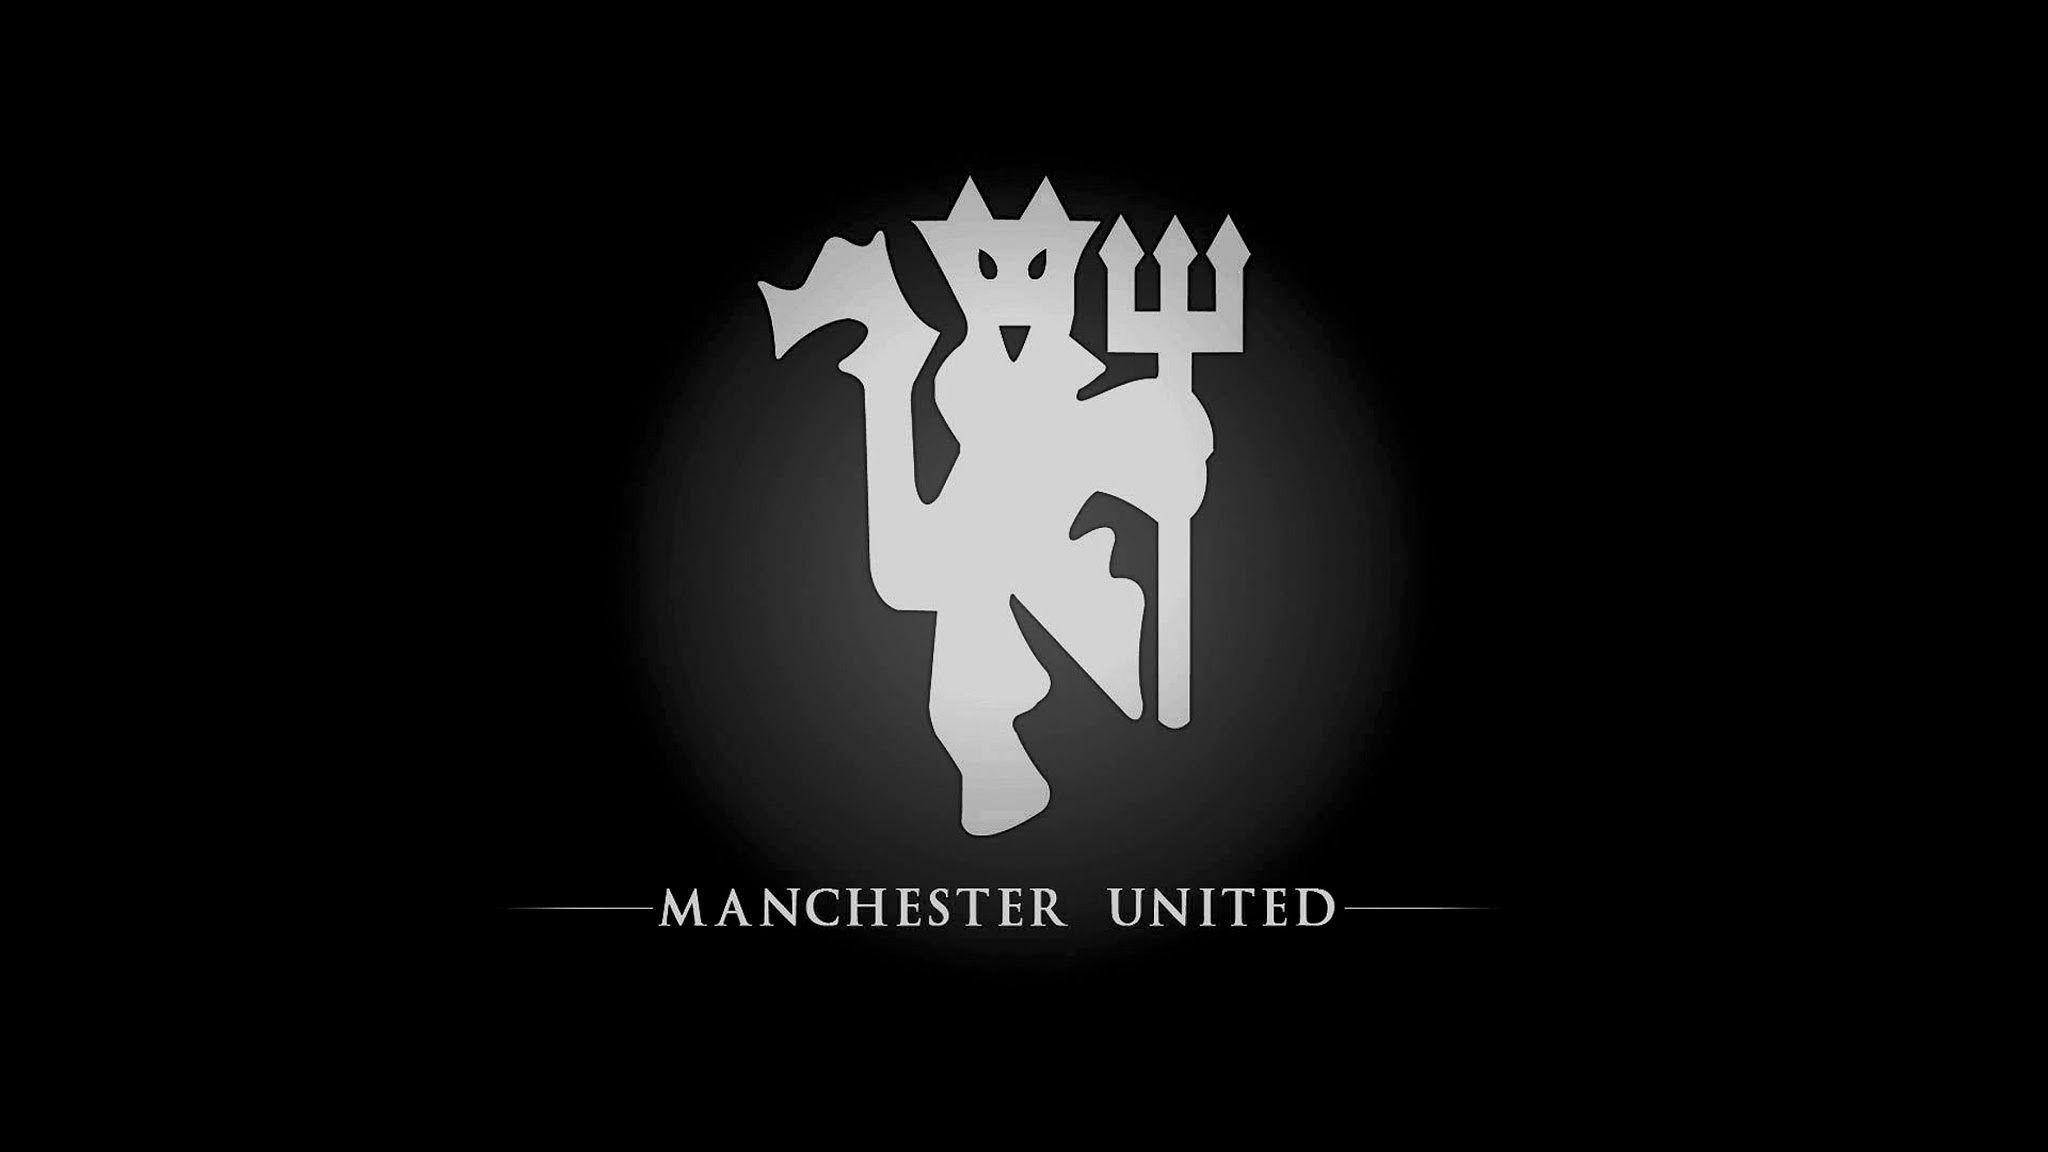 2048x1152 Sports Wallpaper: Manchester United Black Wallpapers Free HD .